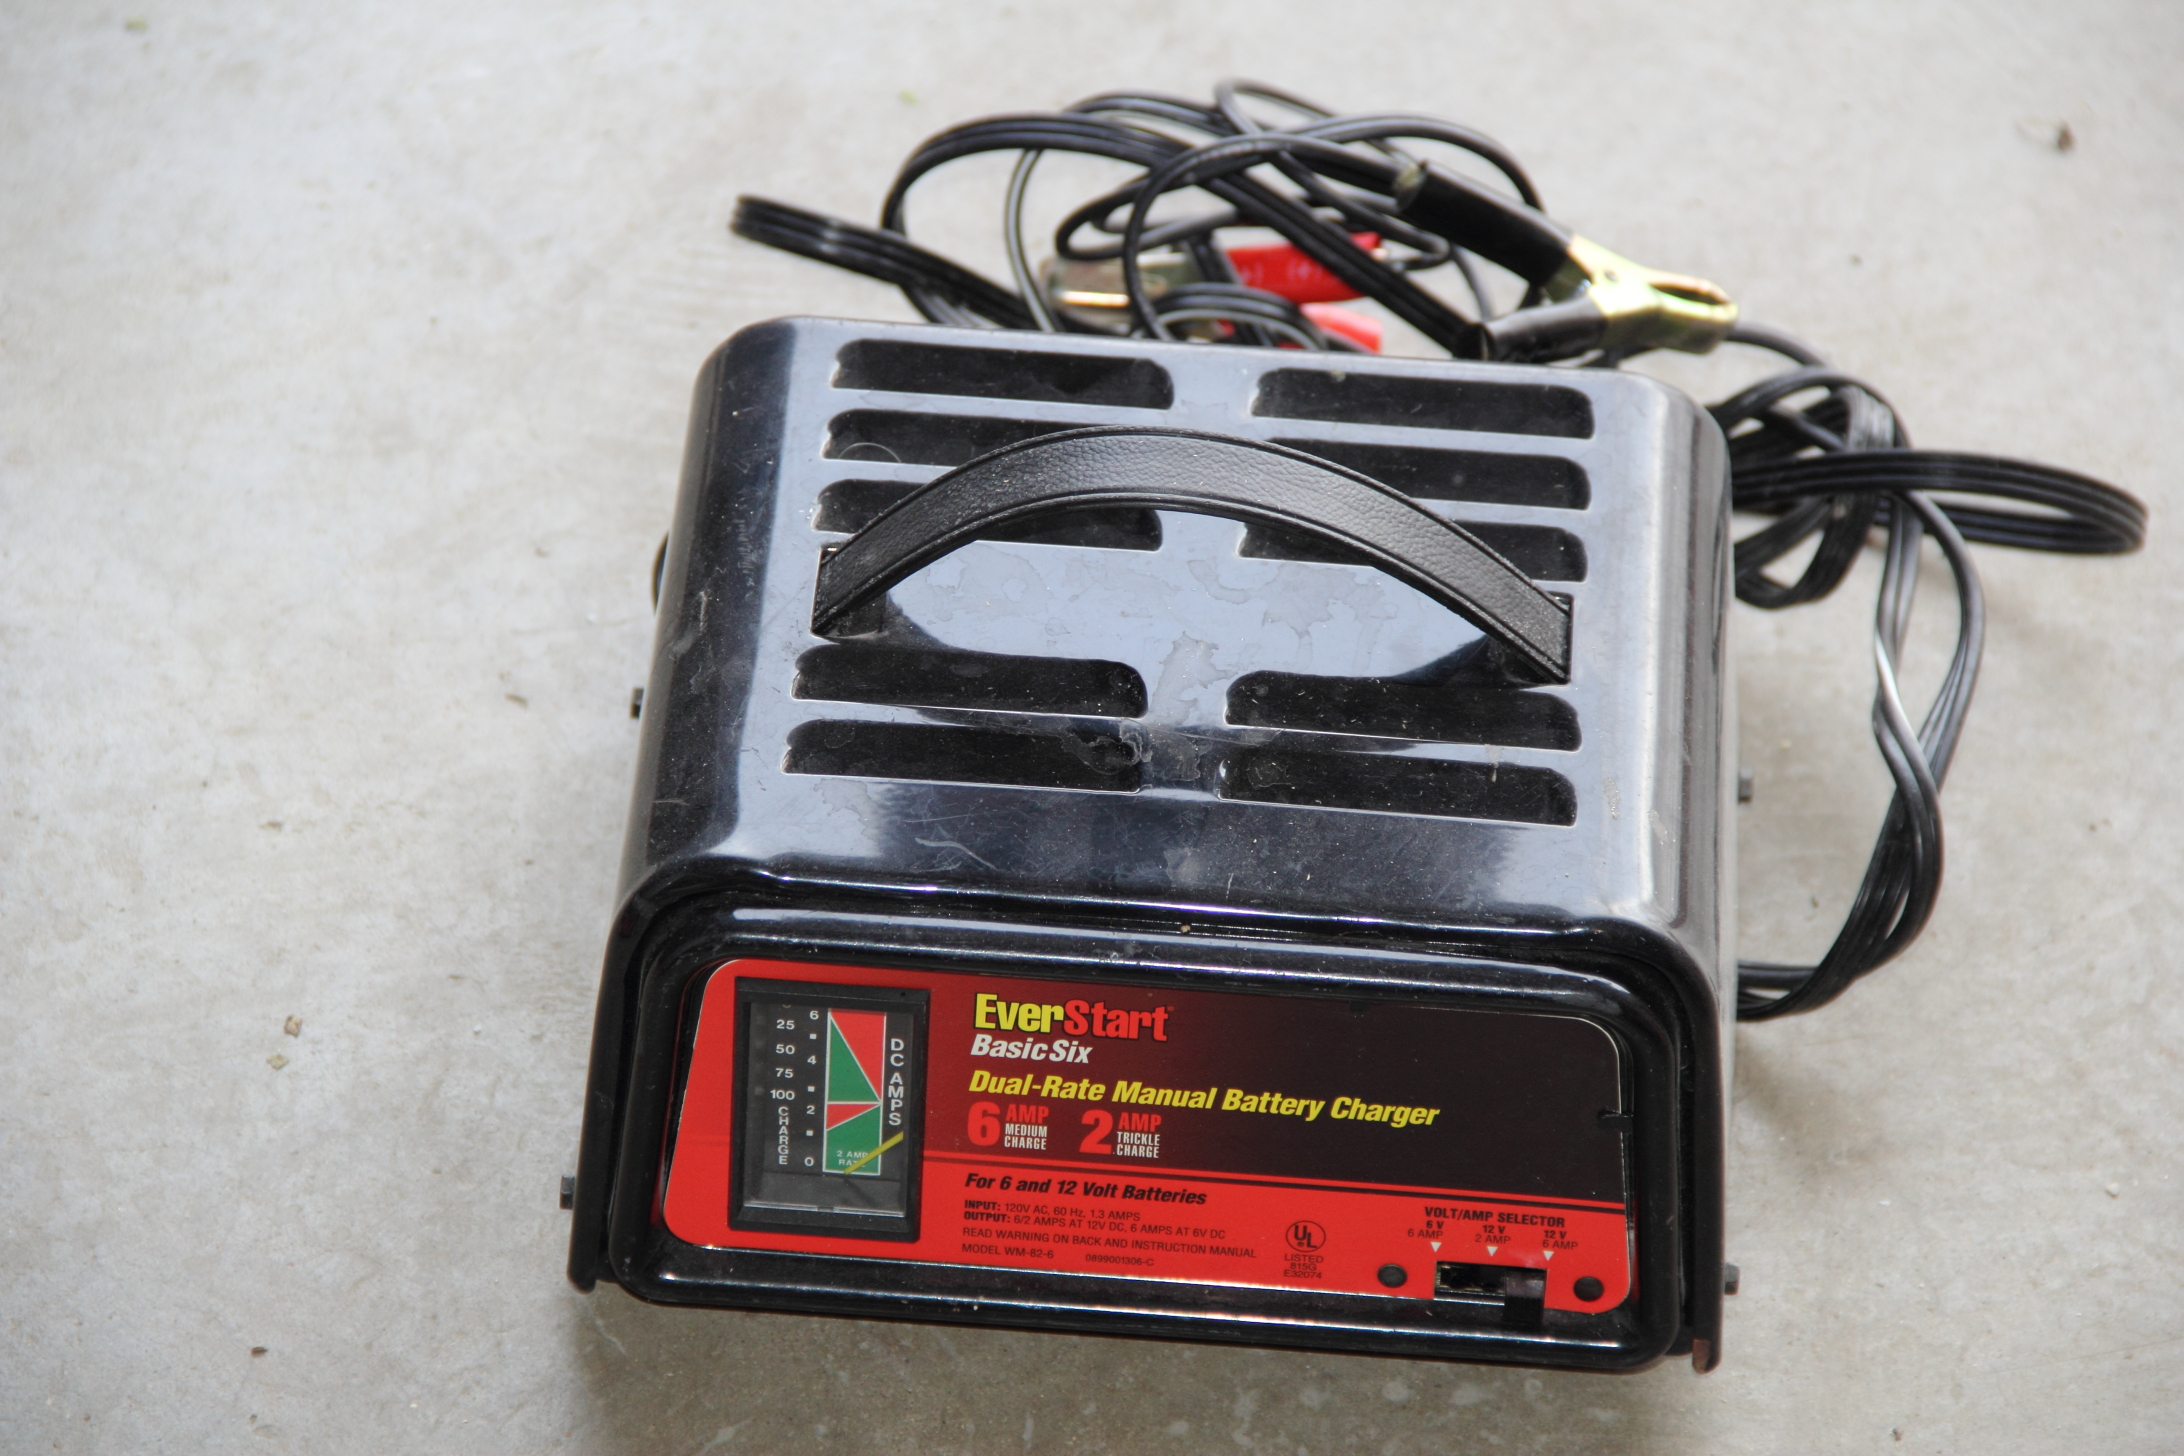 Everstart starter 50 battery charger Manual